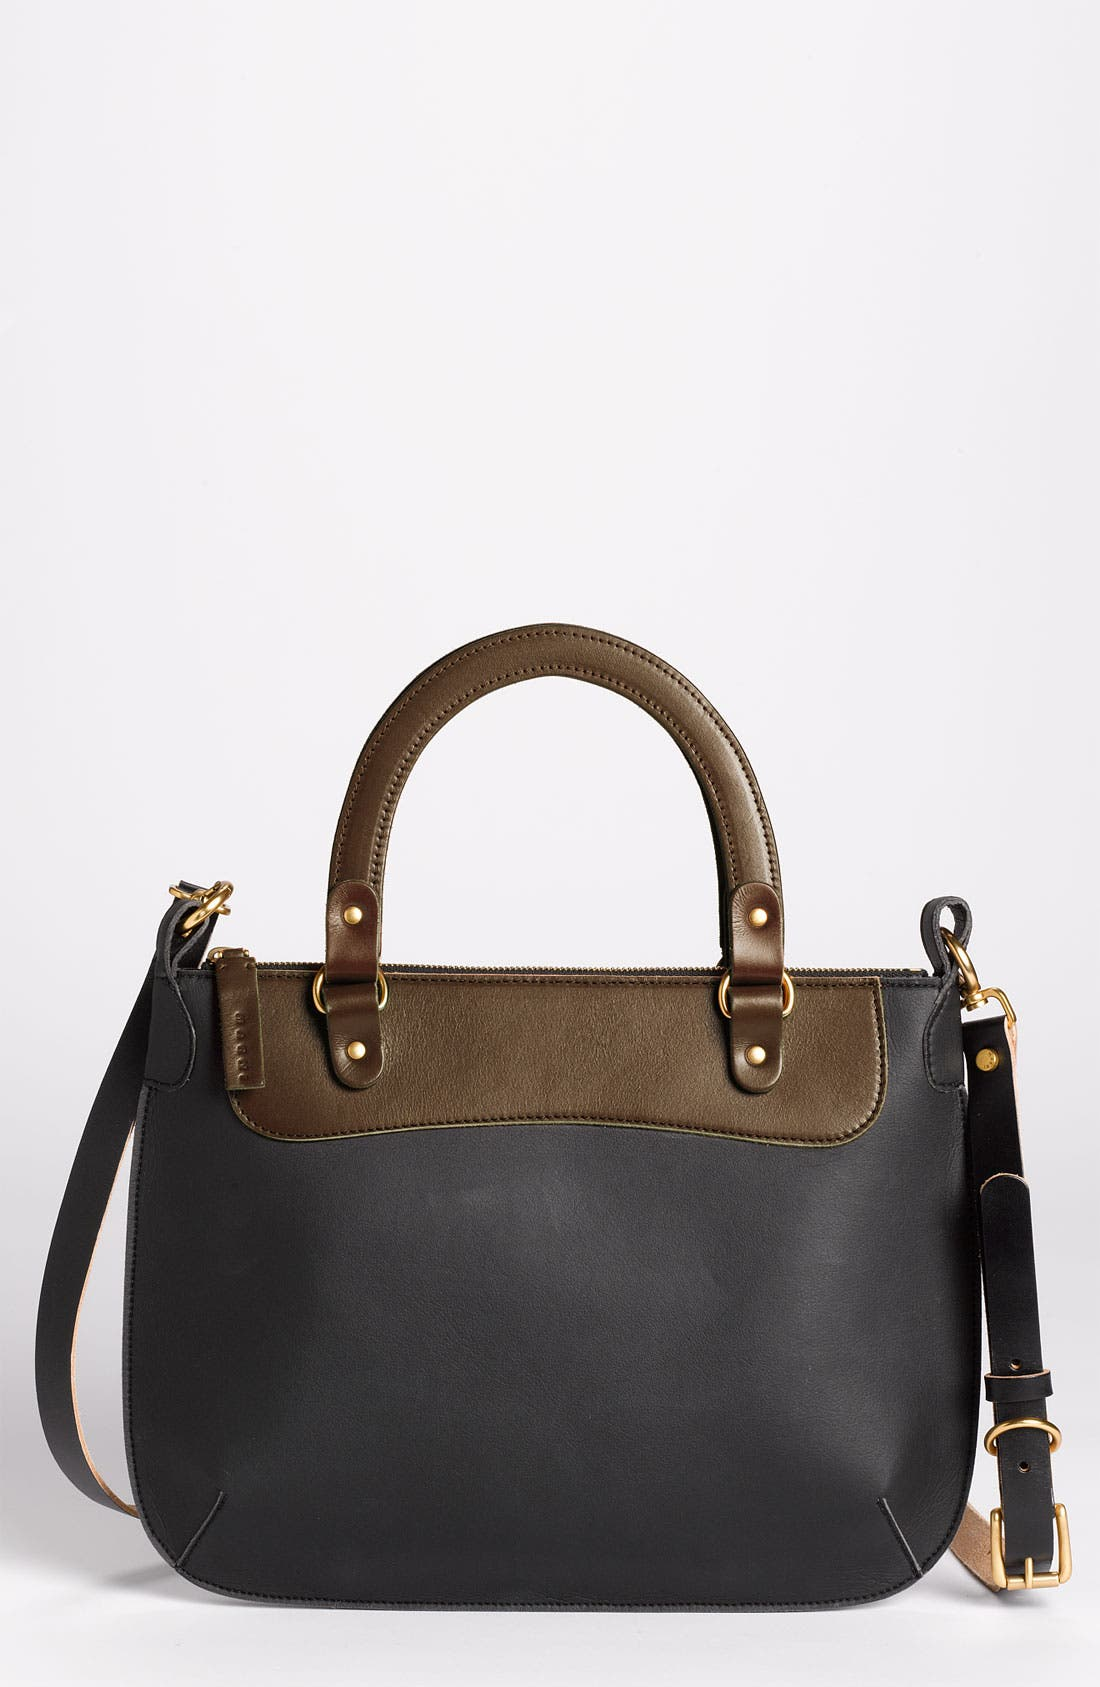 Alternate Image 1 Selected - Marni 'Large' Leather Crossbody Bag